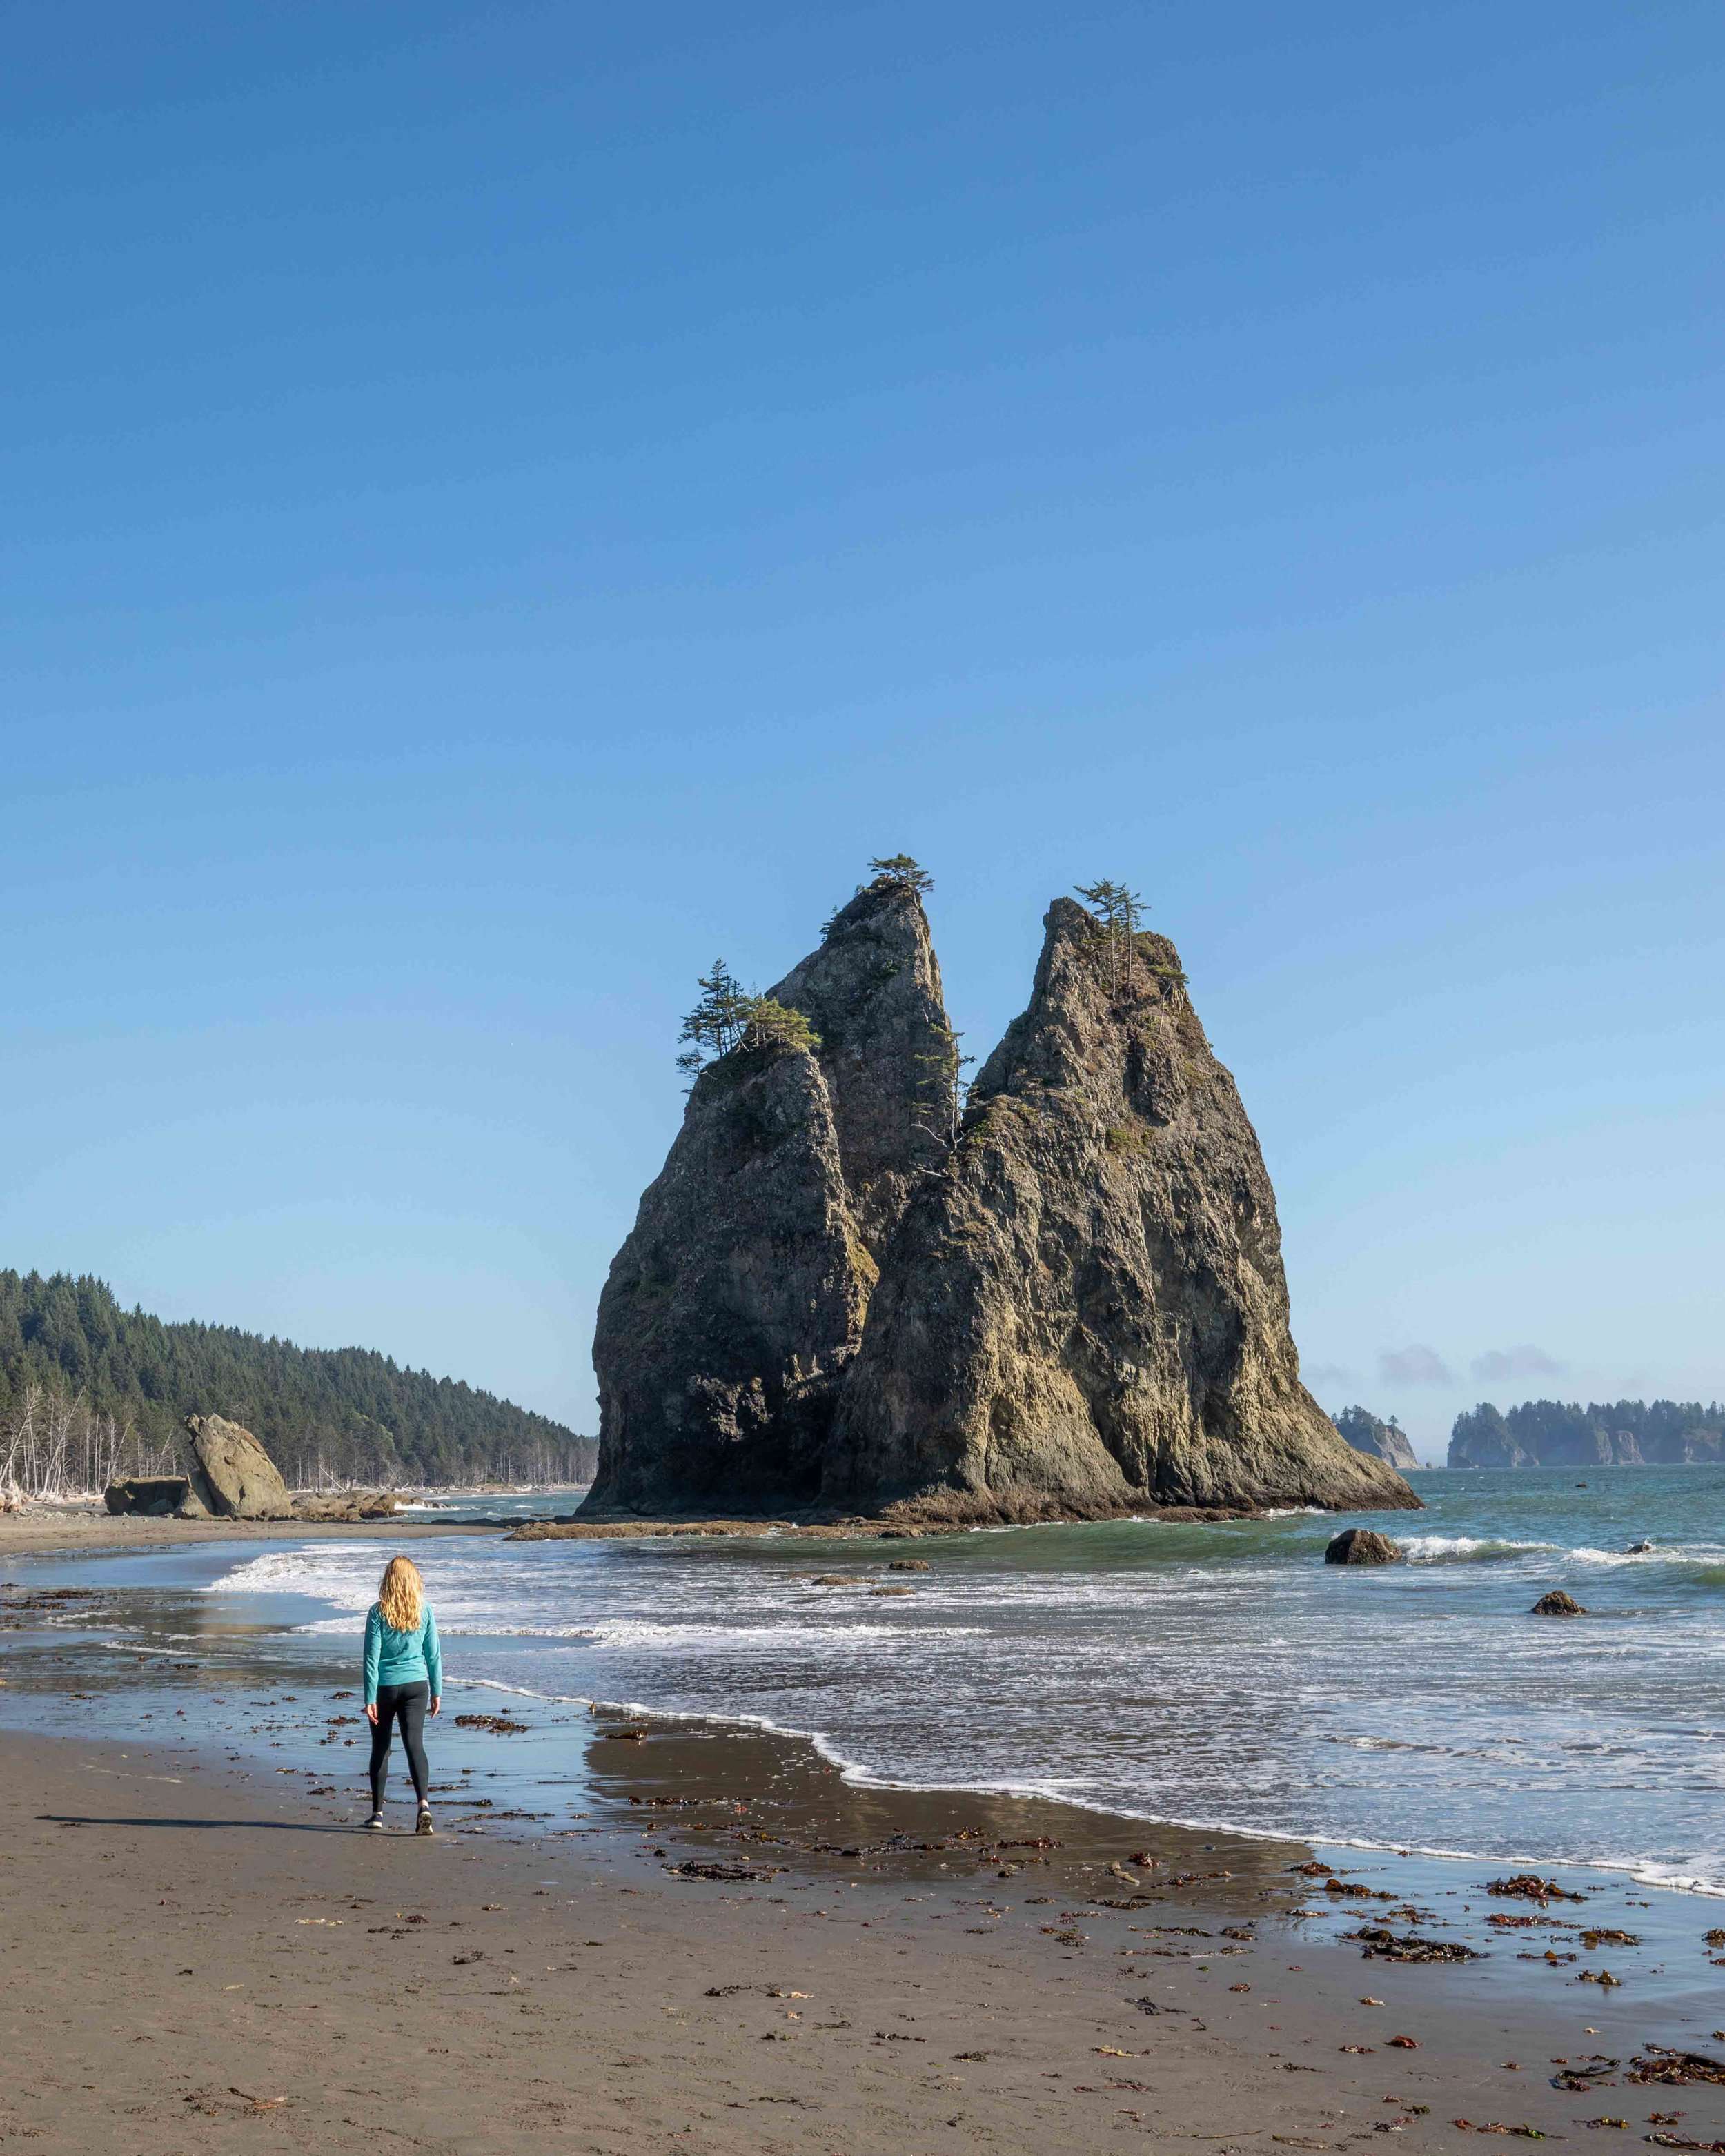 The Rialto beach to hole in the wall hike